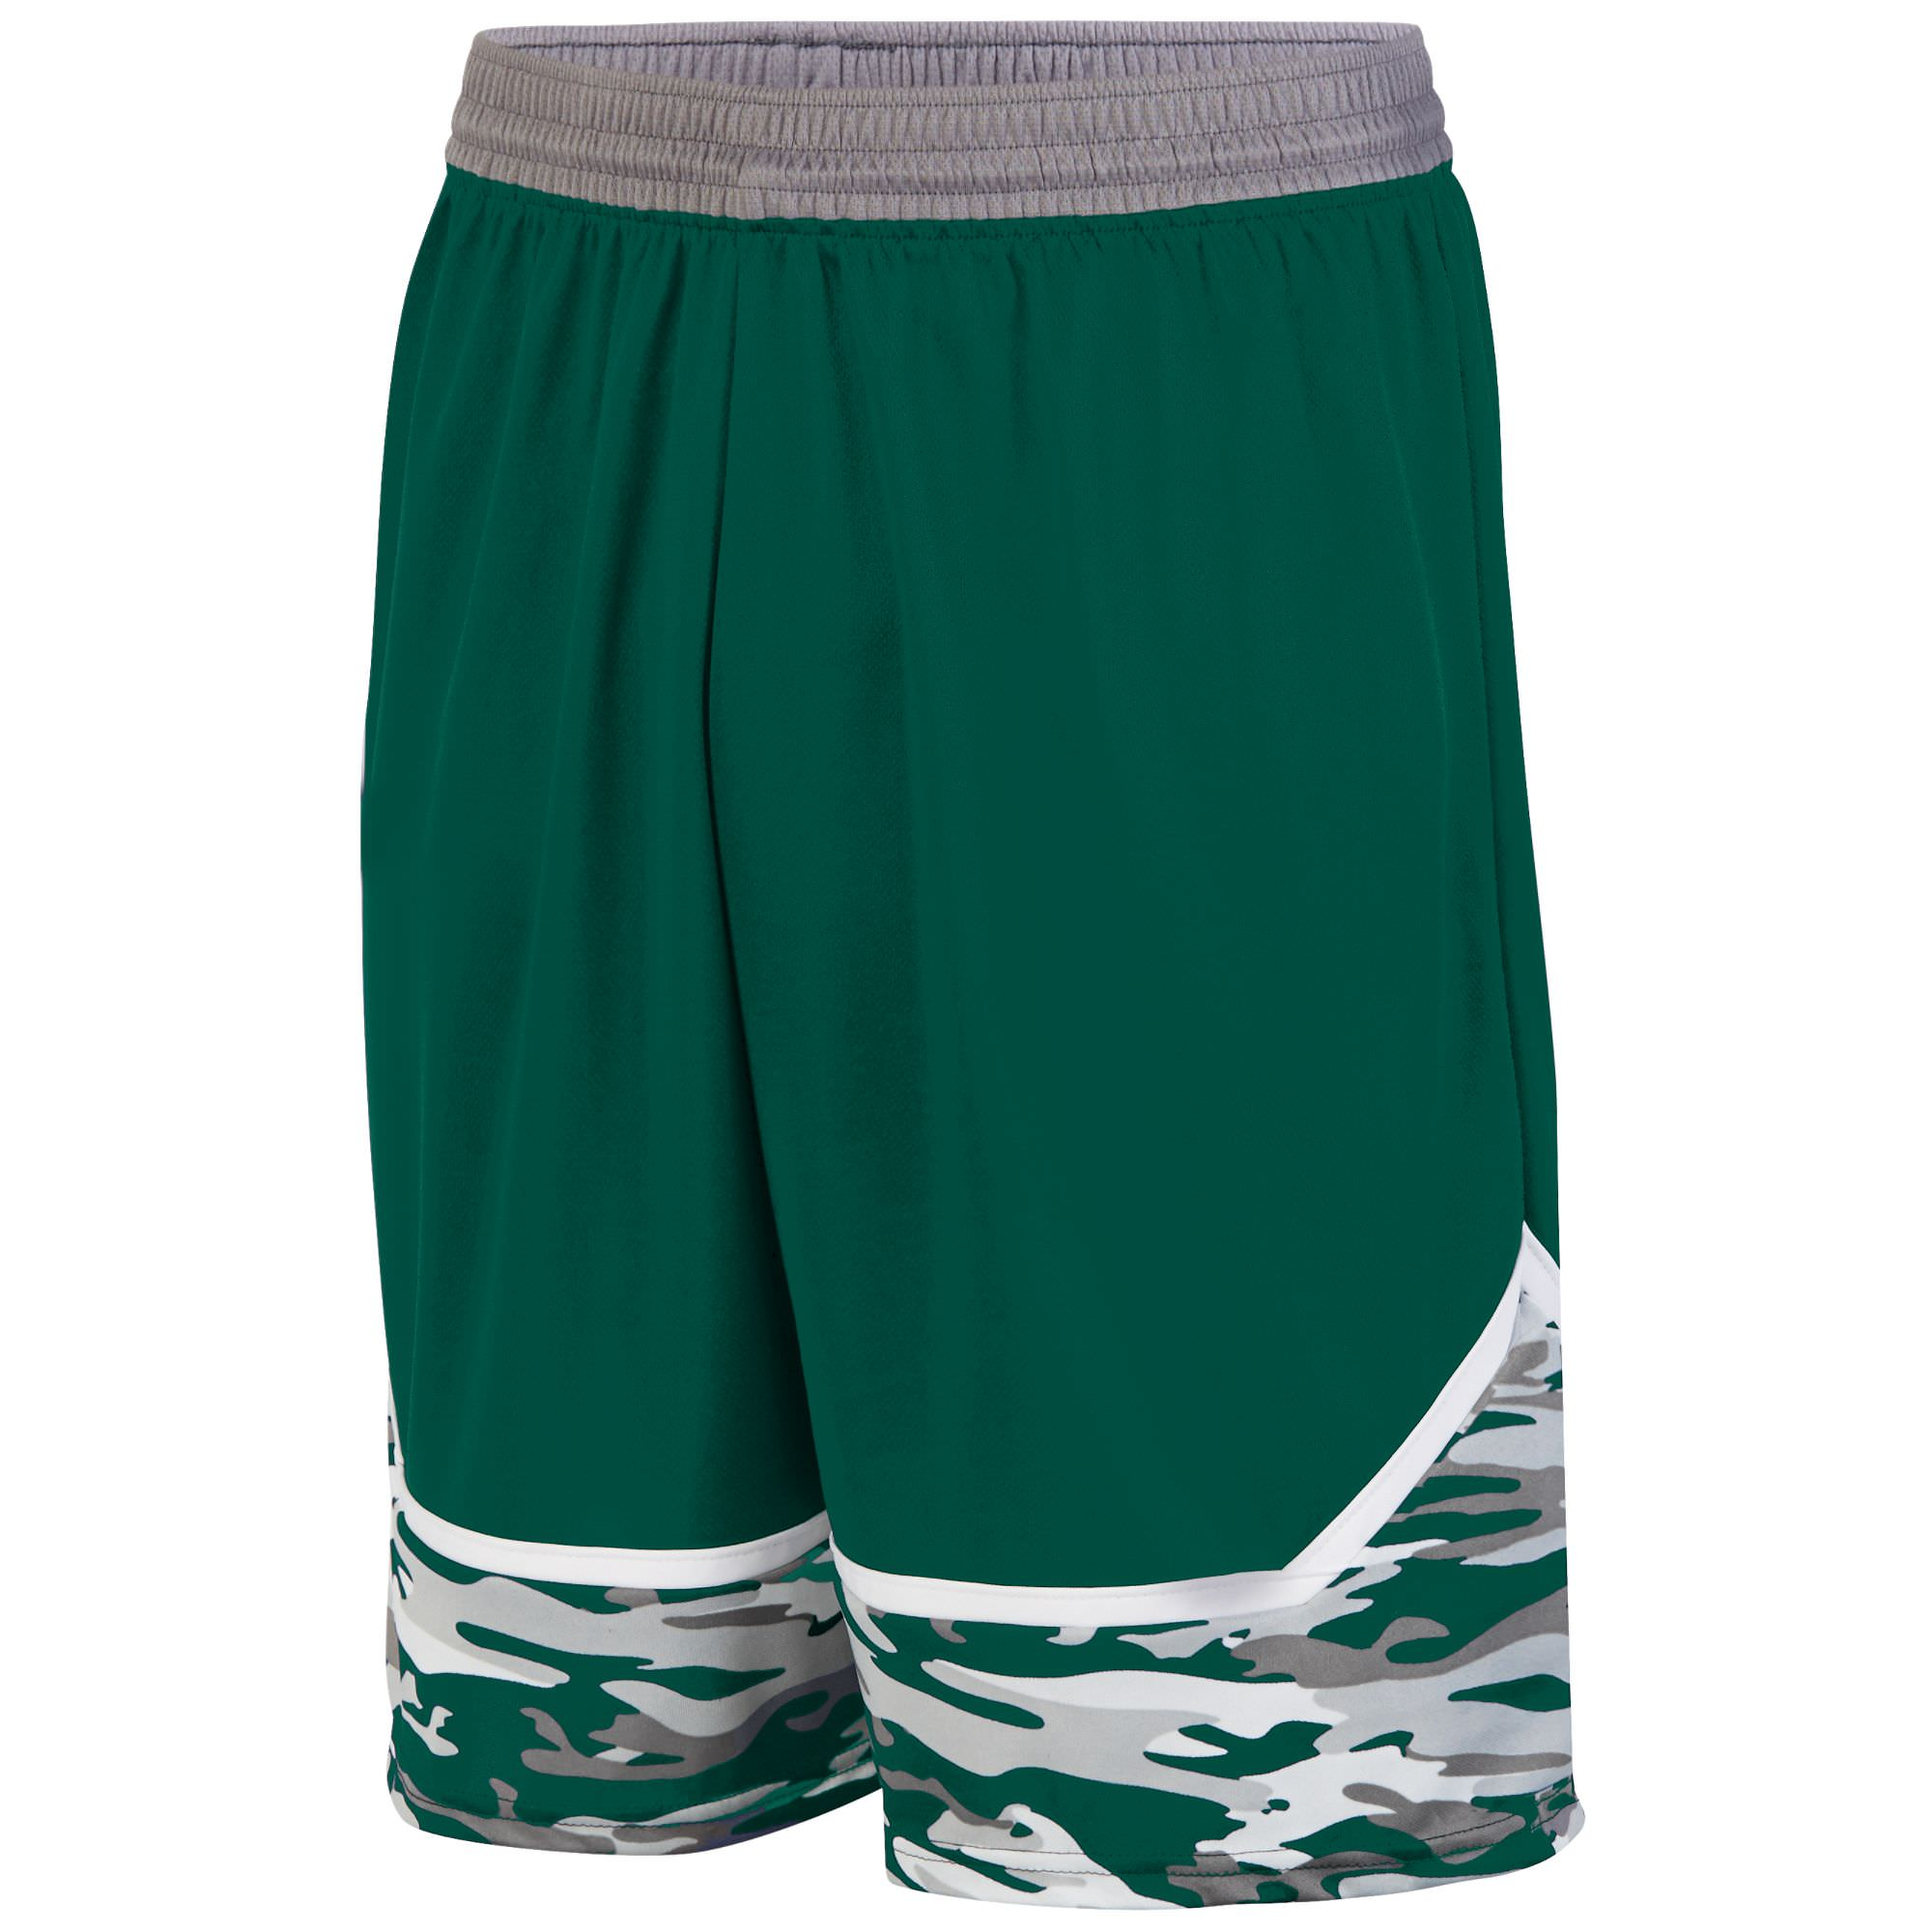 Augusta Sportswear Men's Mod Camo Game Short 1117